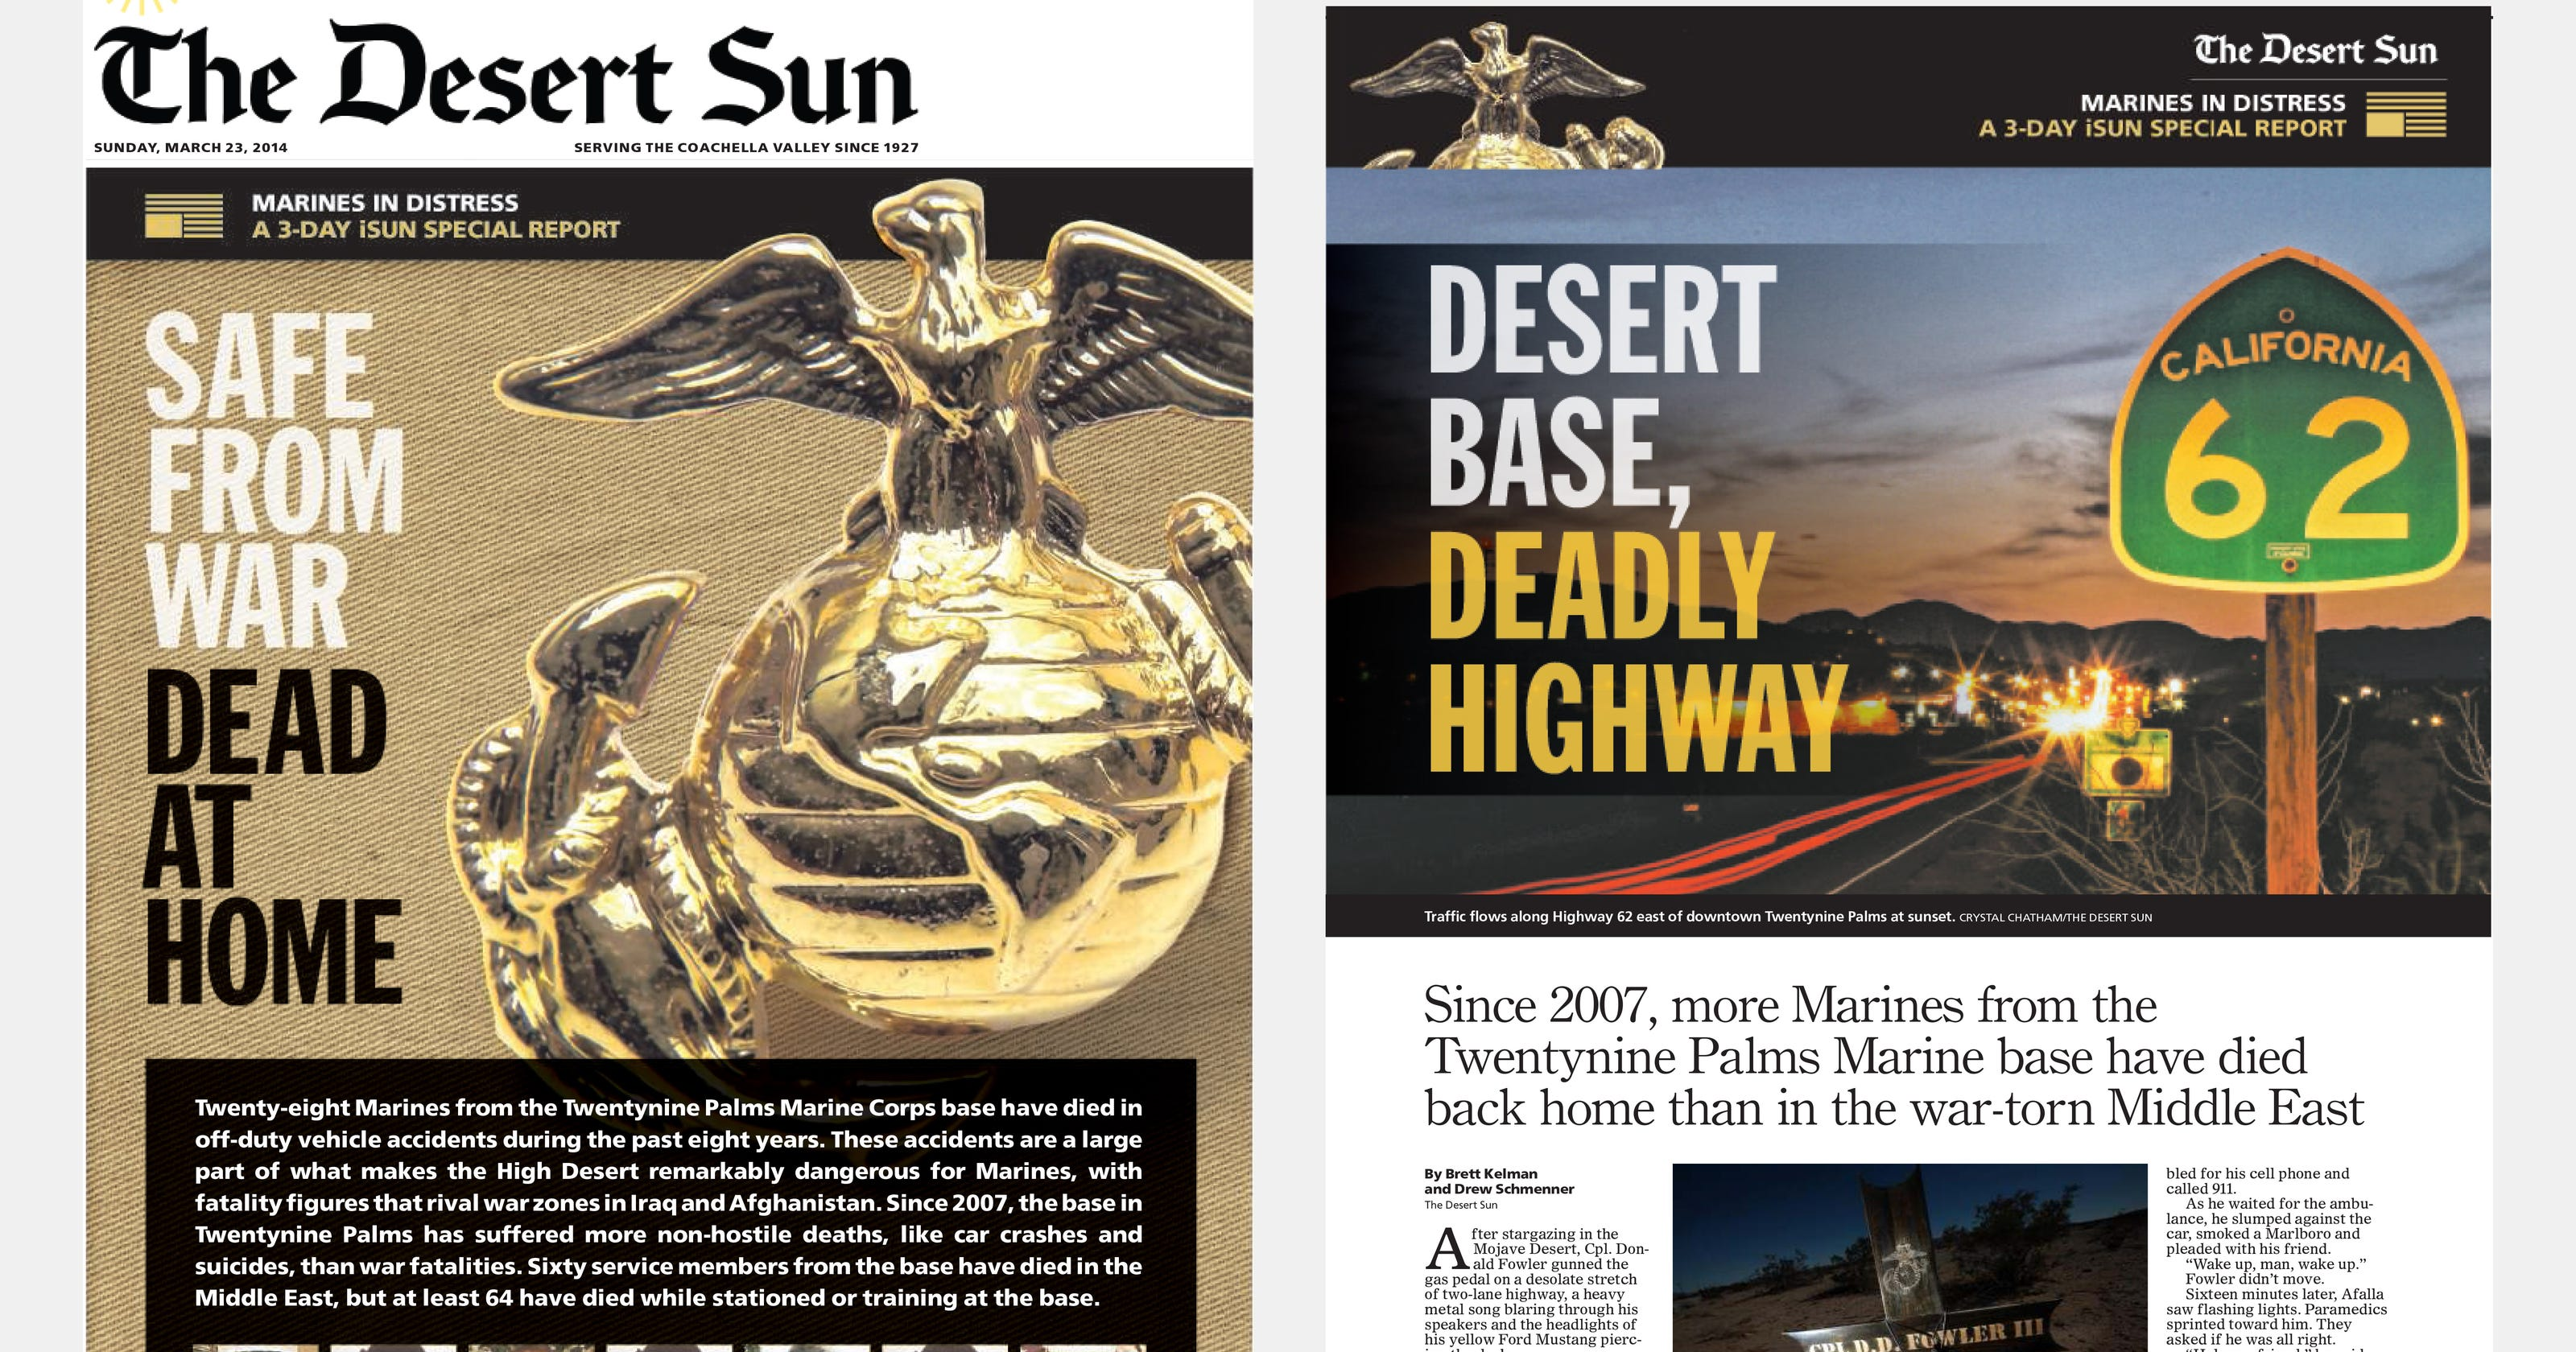 foto de Desert base, deadly highway